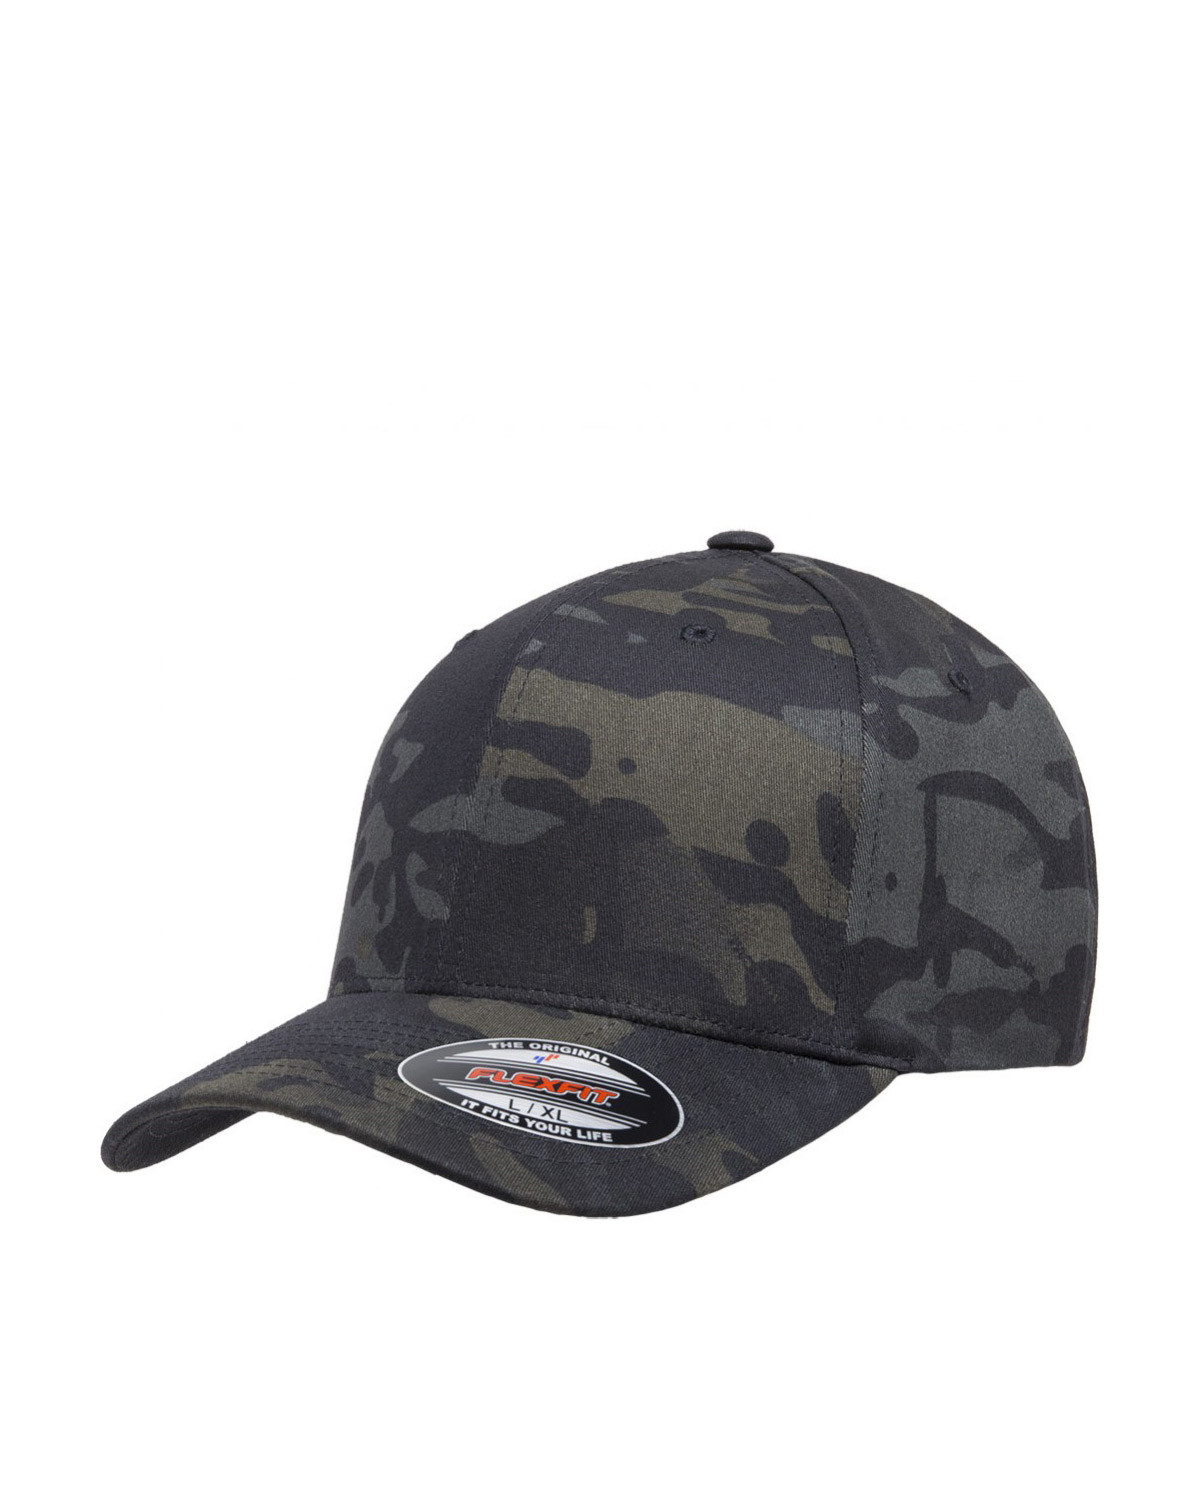 Image of   Flexfit Baseball Cap (Sort / Multicam, S/M)